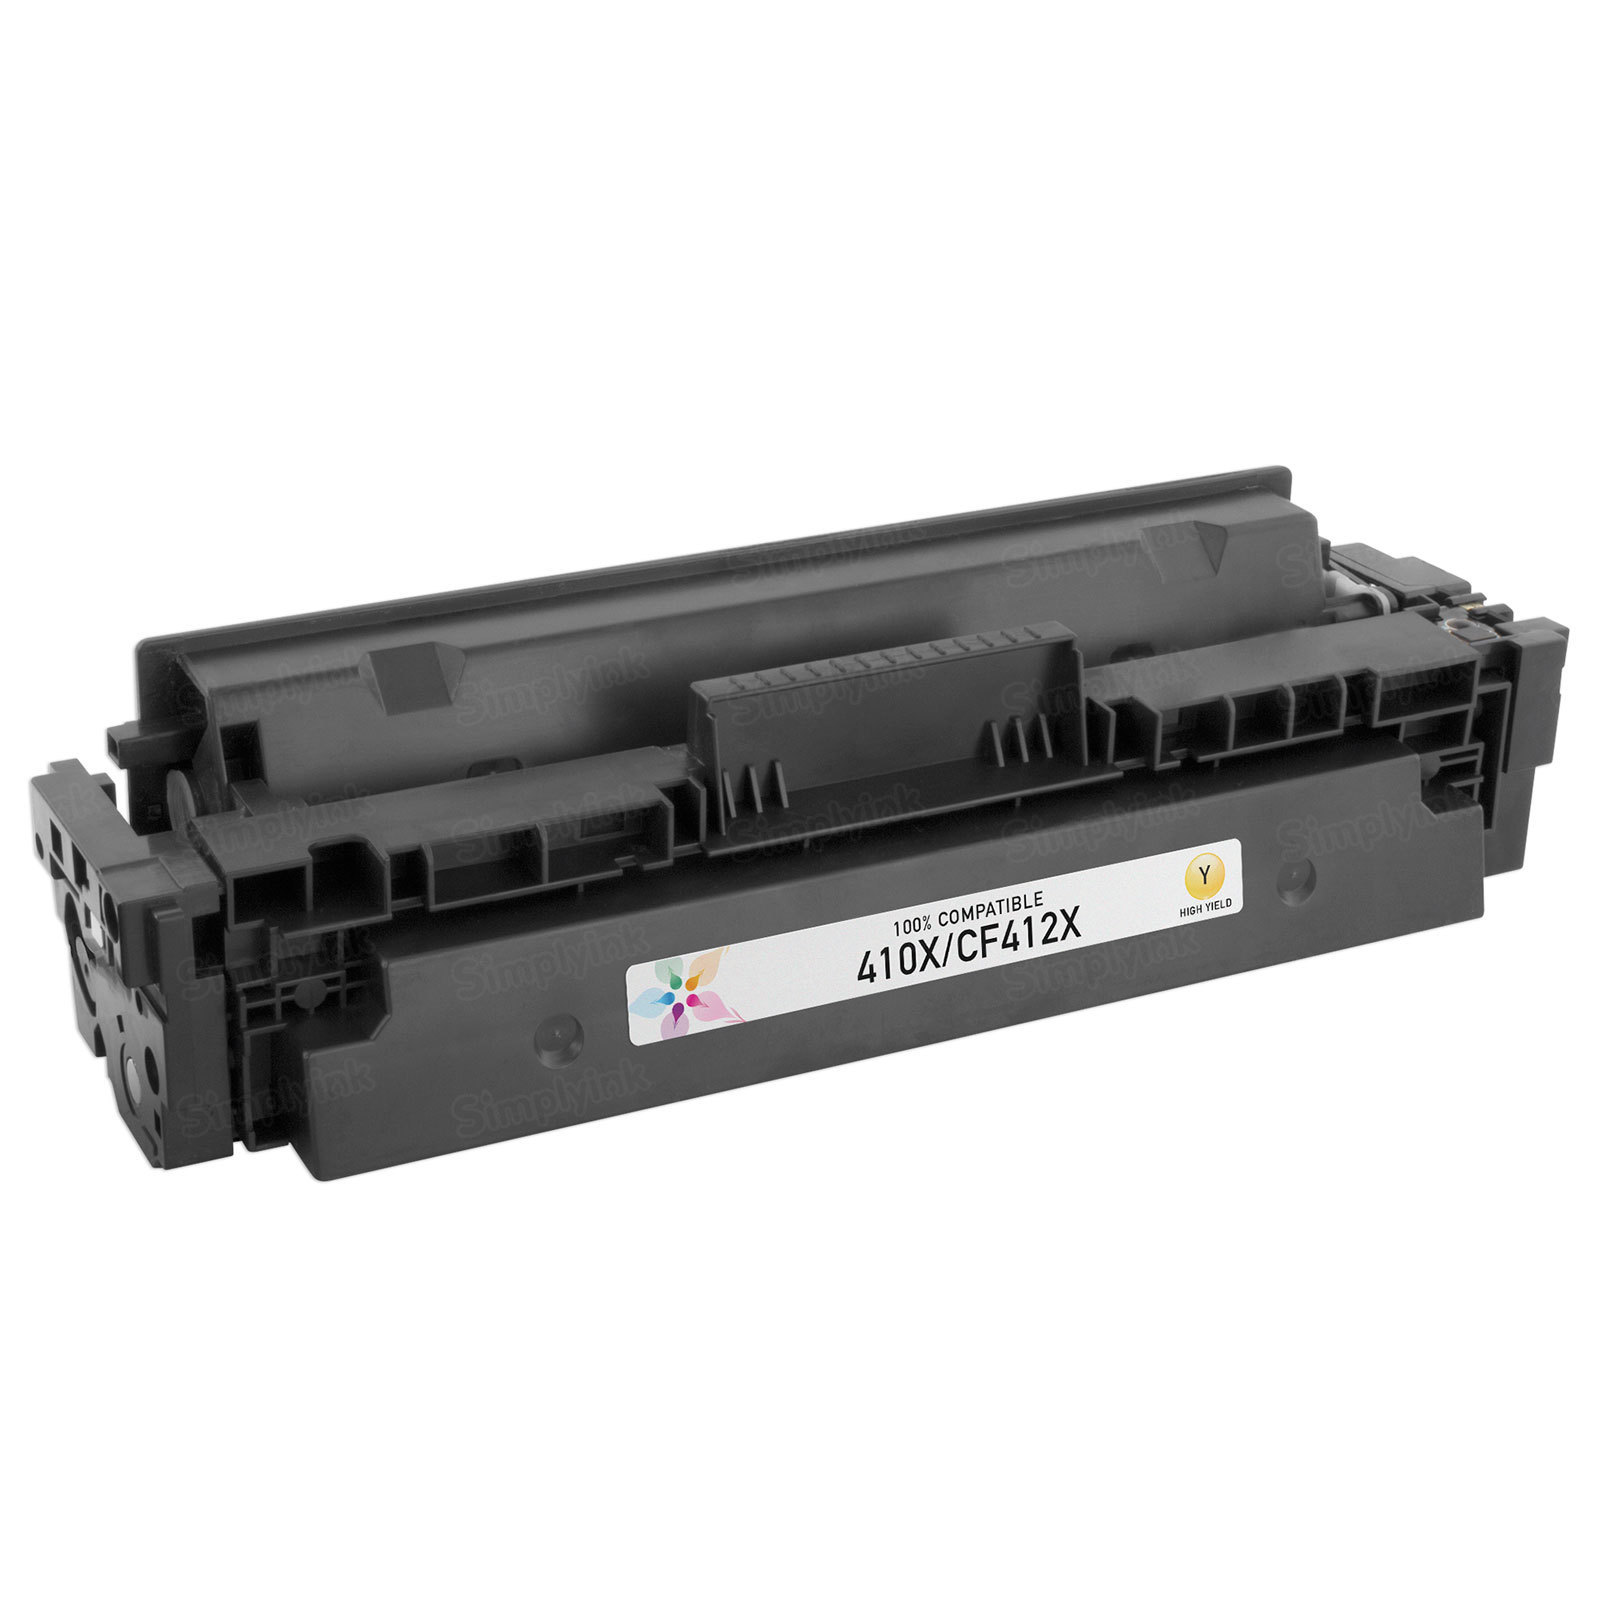 Replacement HY Yellow Toner for HP 410X